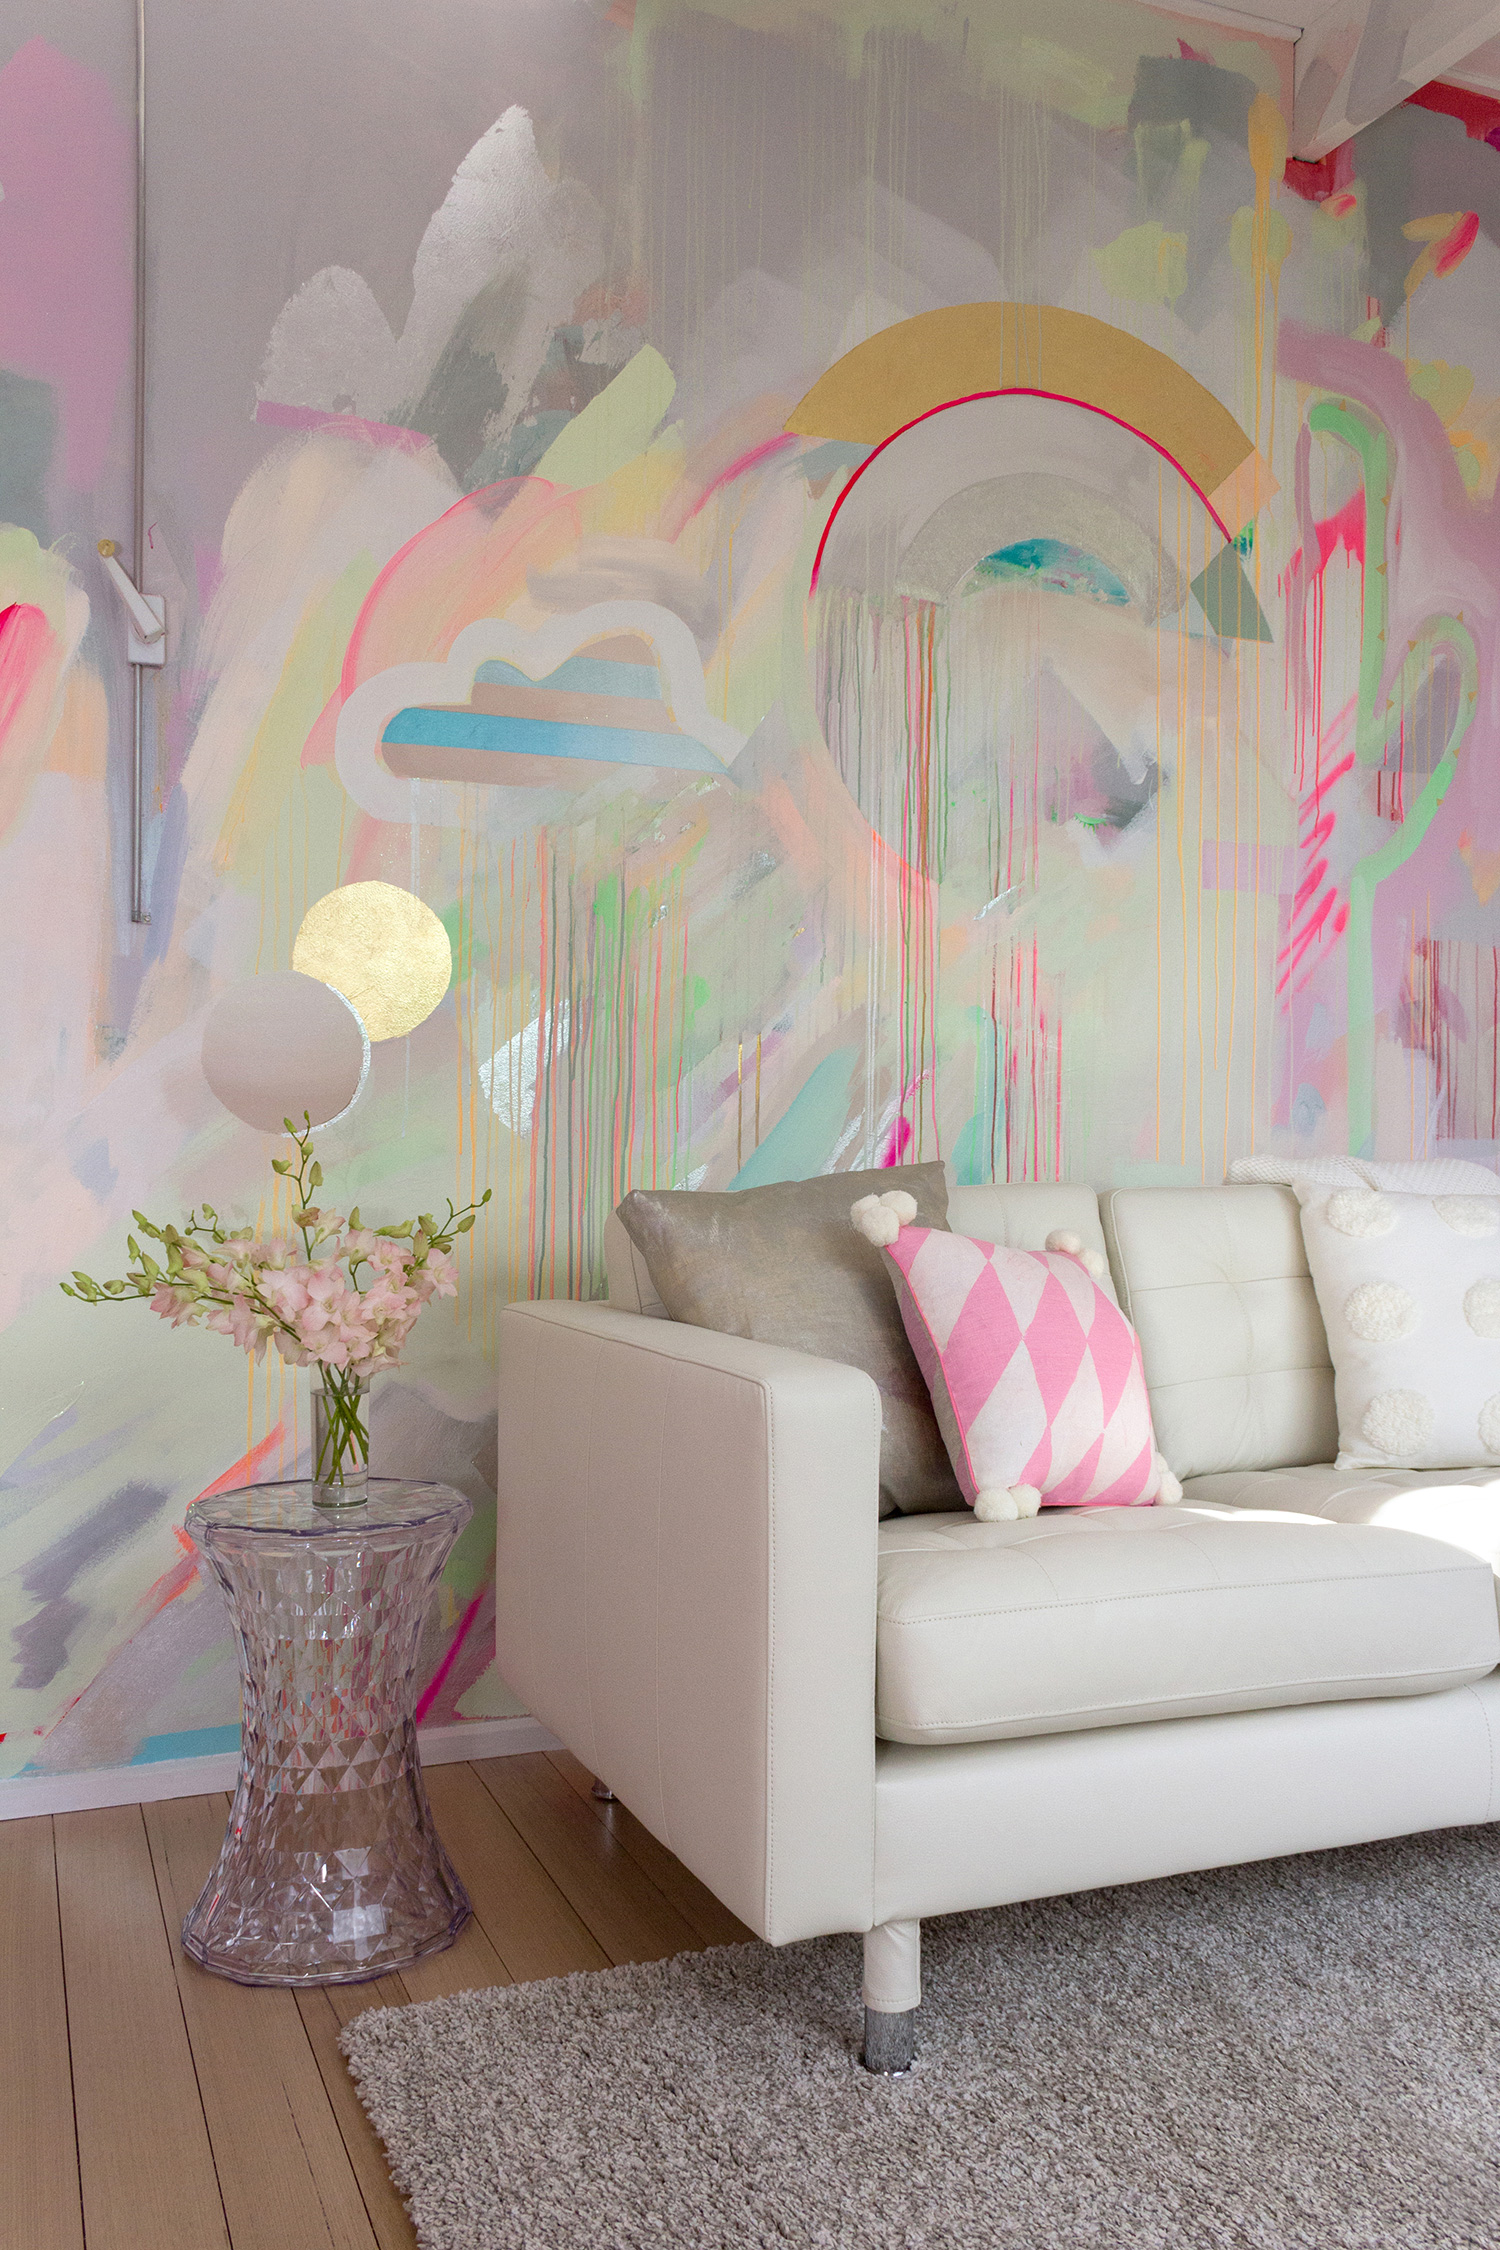 Vibrant galaxy wall mural in bright neon colours, featuring gold leaf shapes, metallic rainbow, spray painted cactus and striped cloud. Styled in front is a white leather couch and prism side table with a vase of flowers.